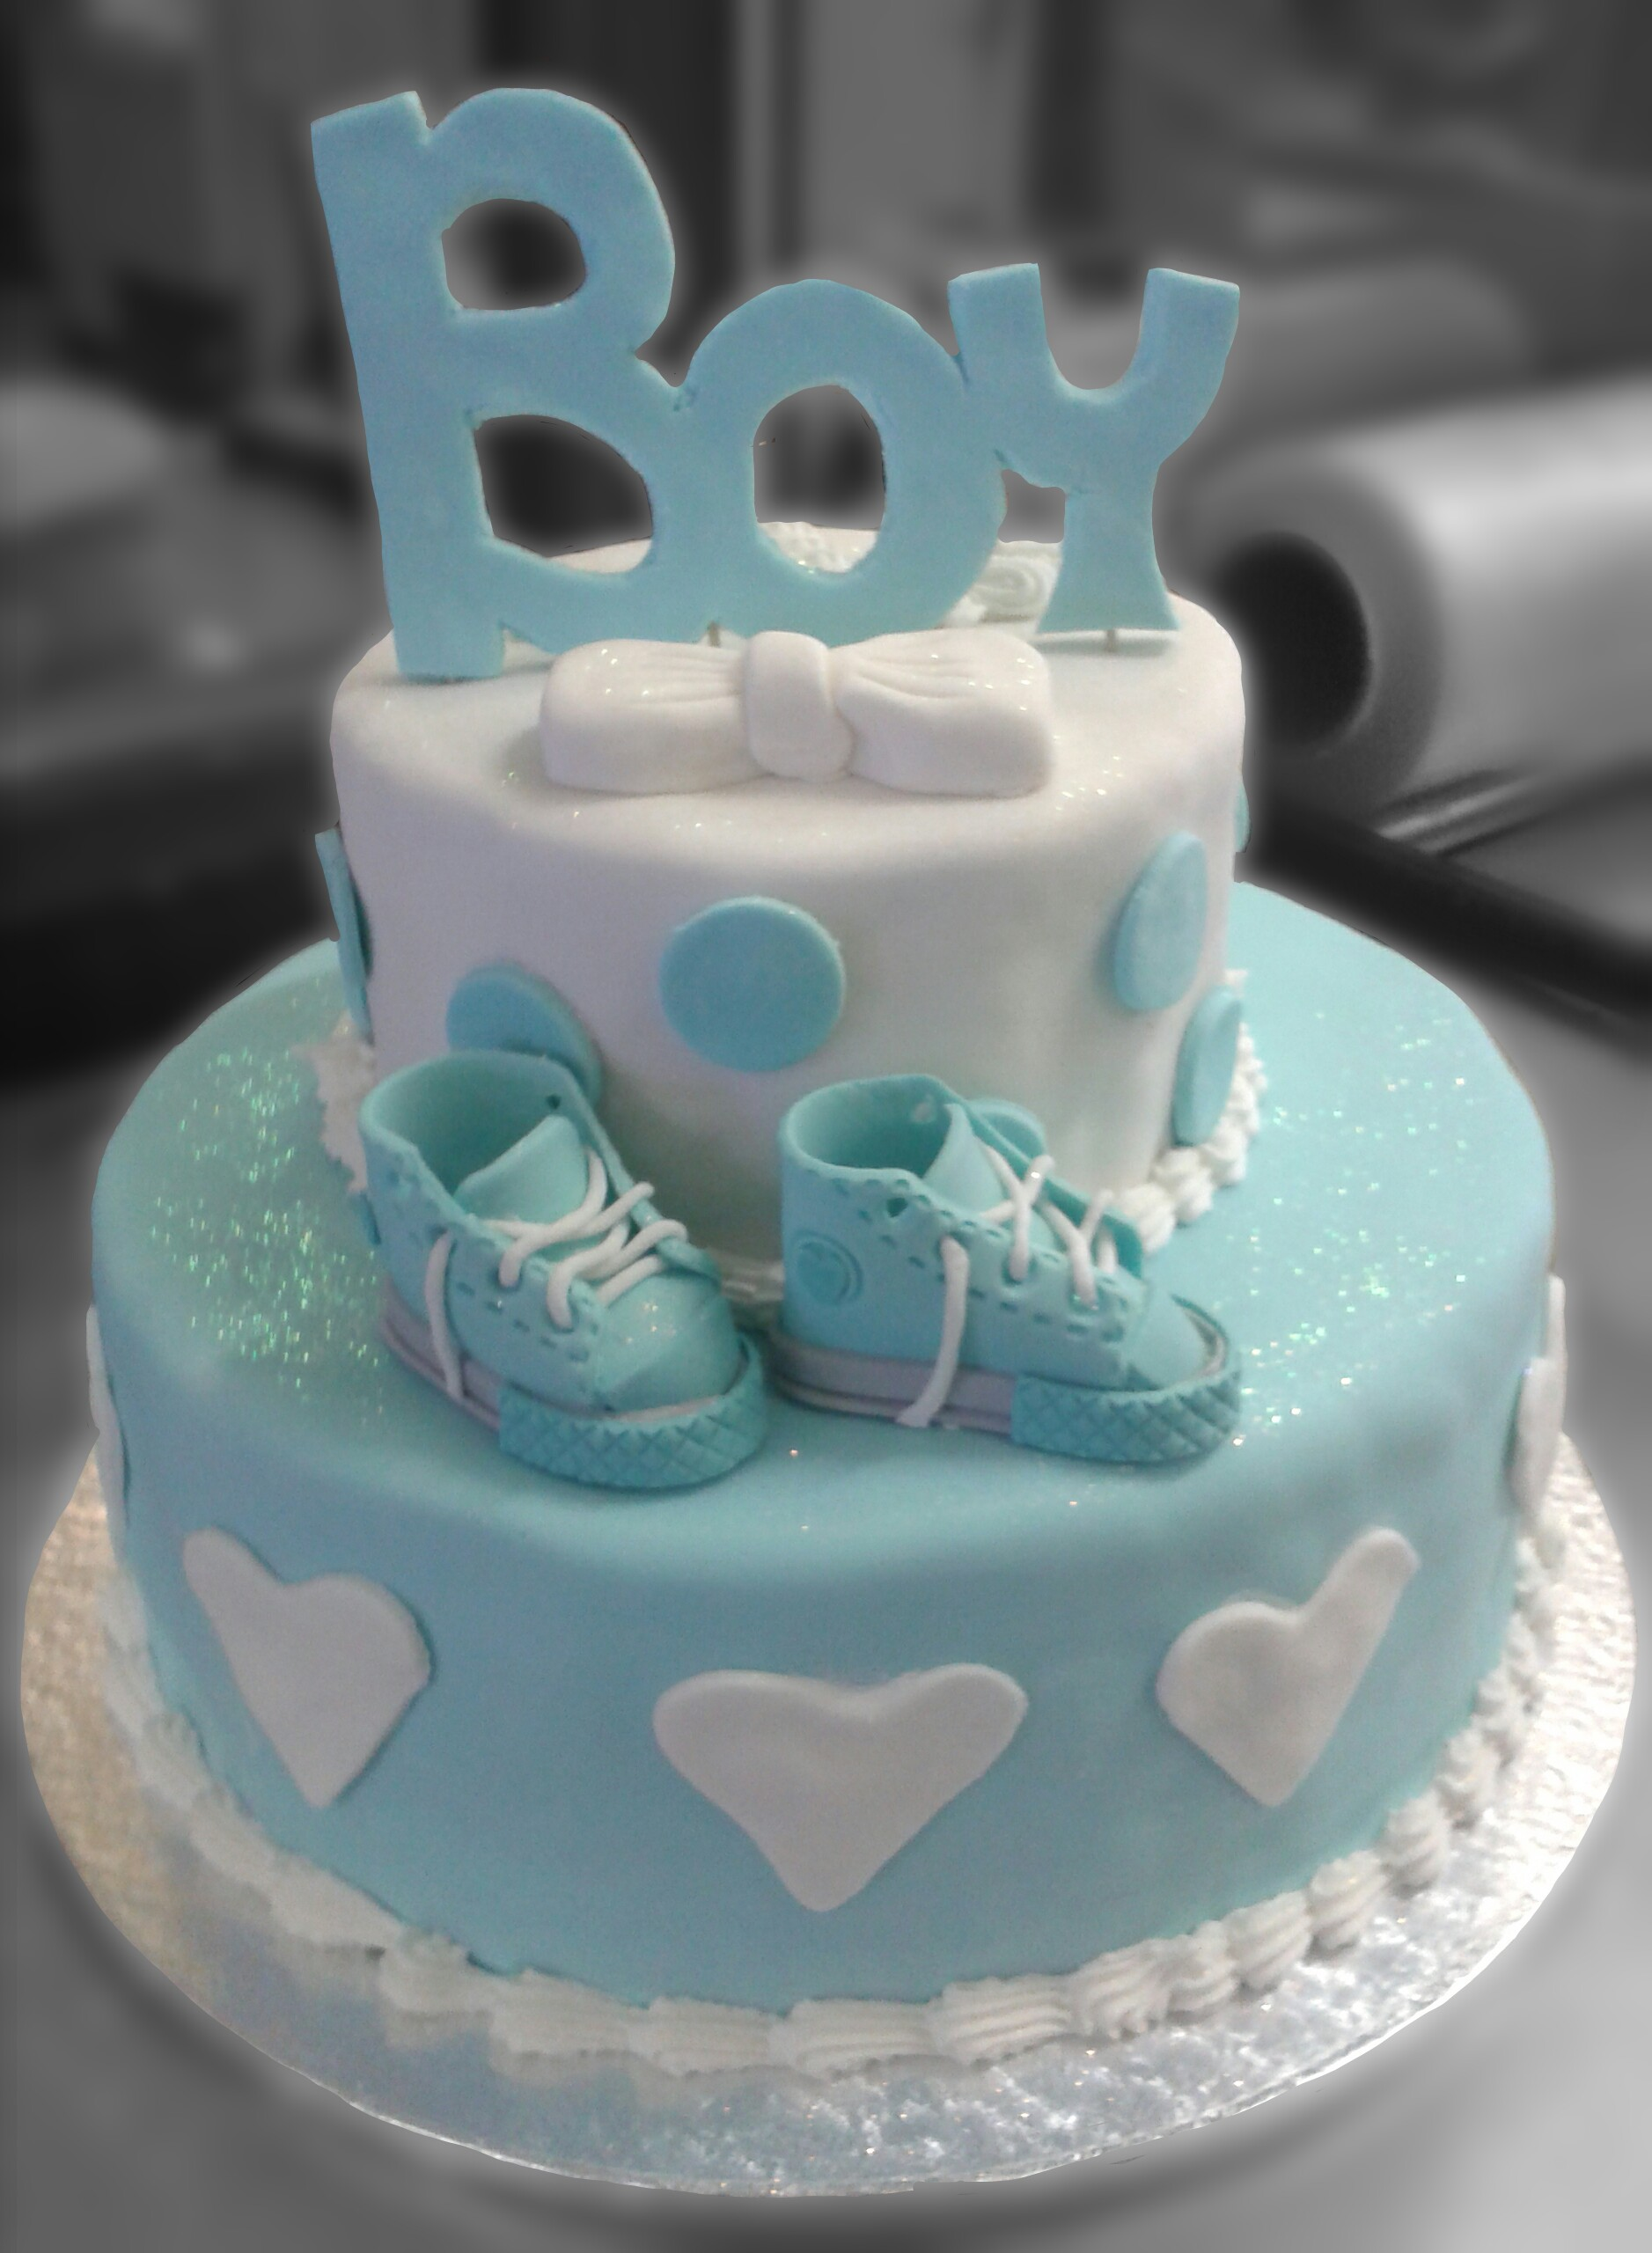 Birthday Cake For Baby Boy Images